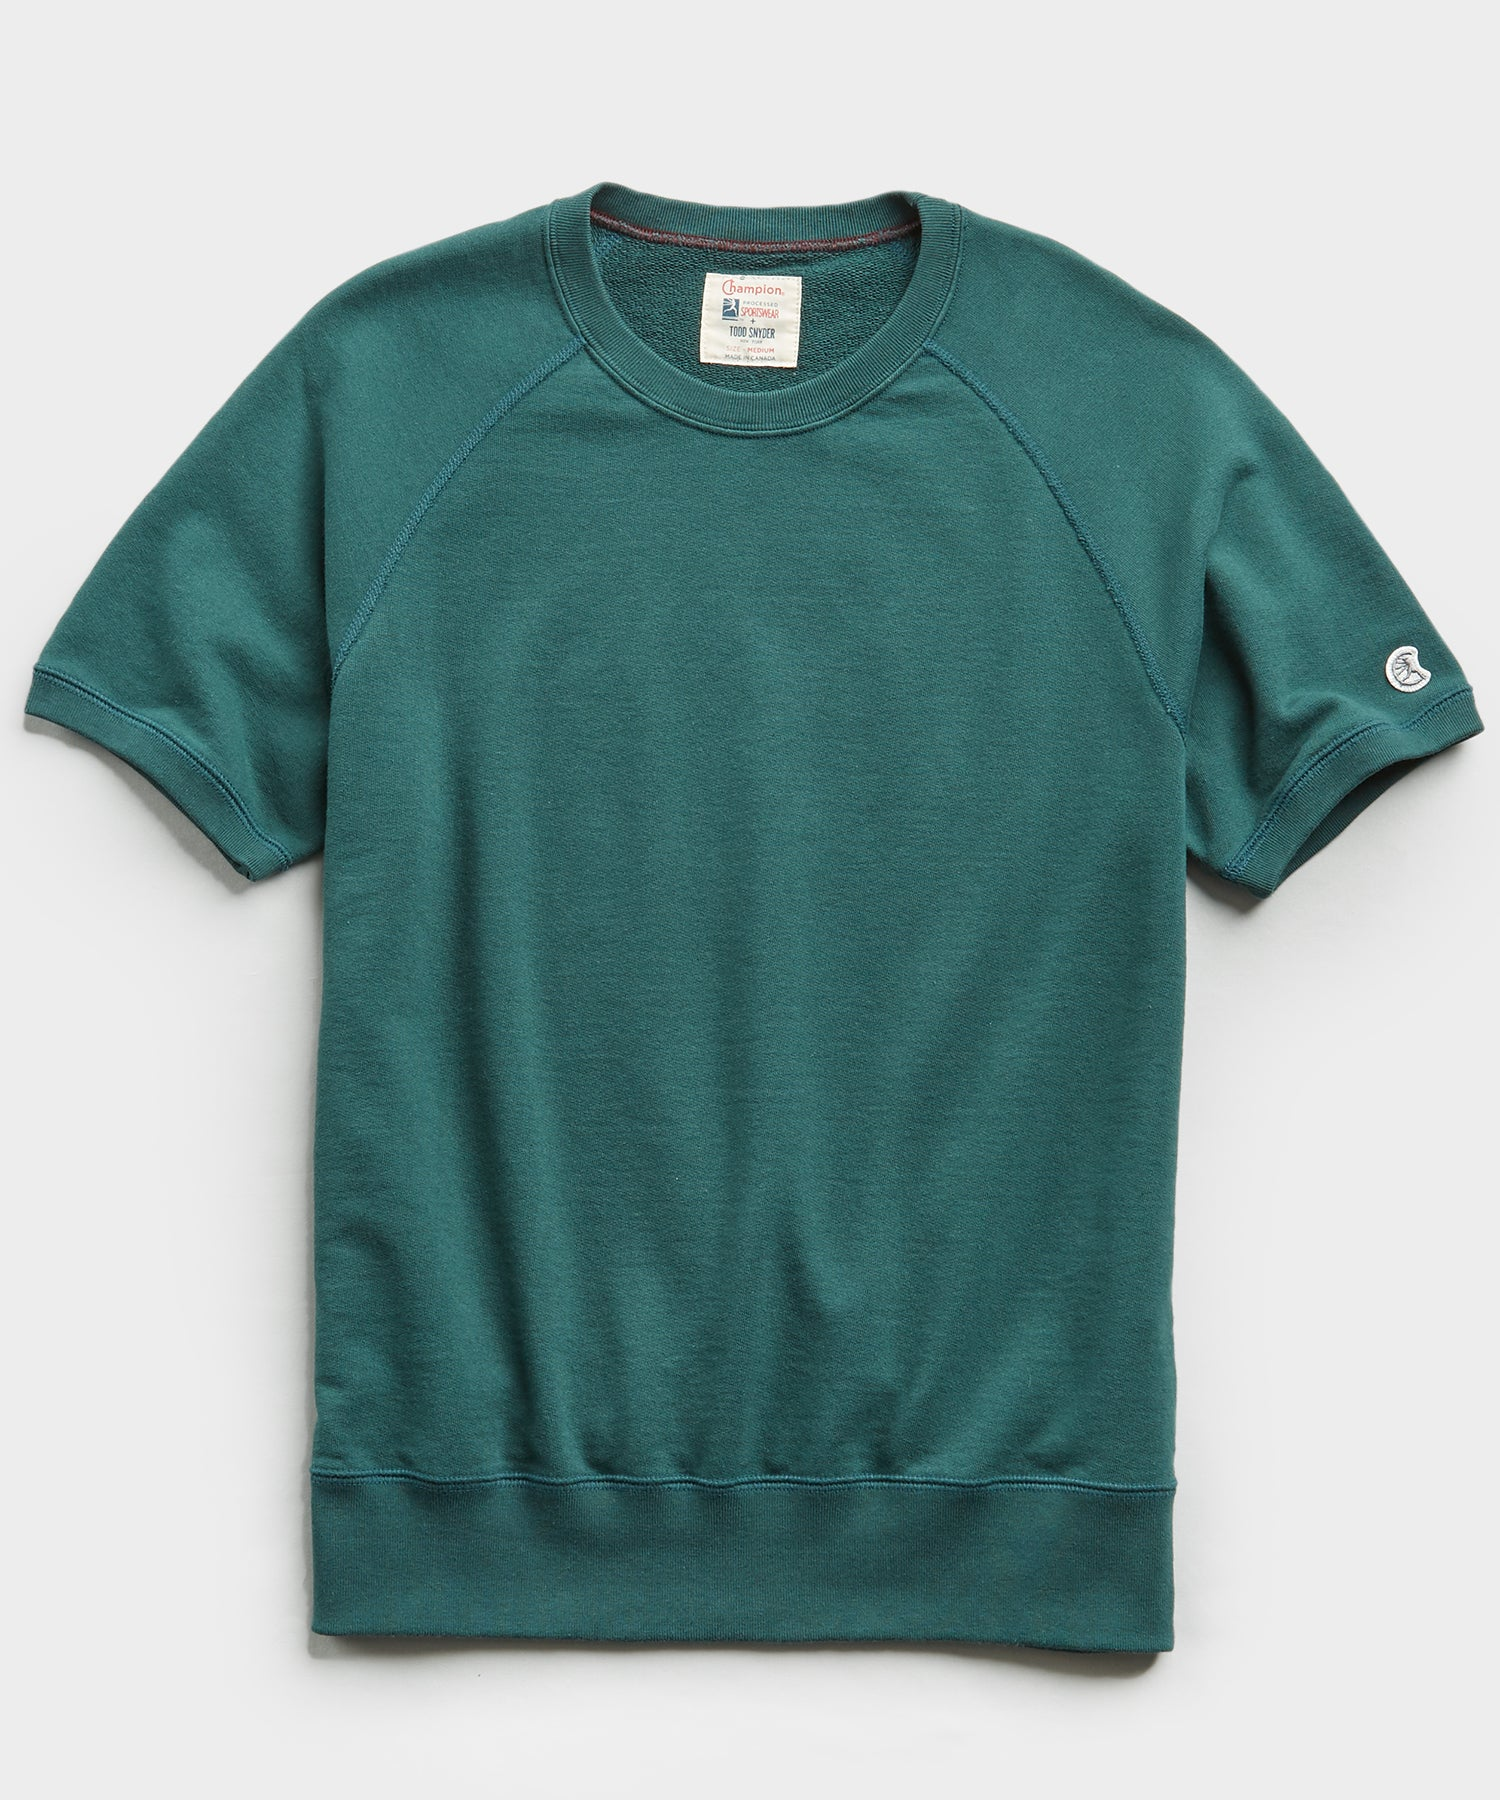 Terry Short Sleeve Sweatshirt in Storm Green